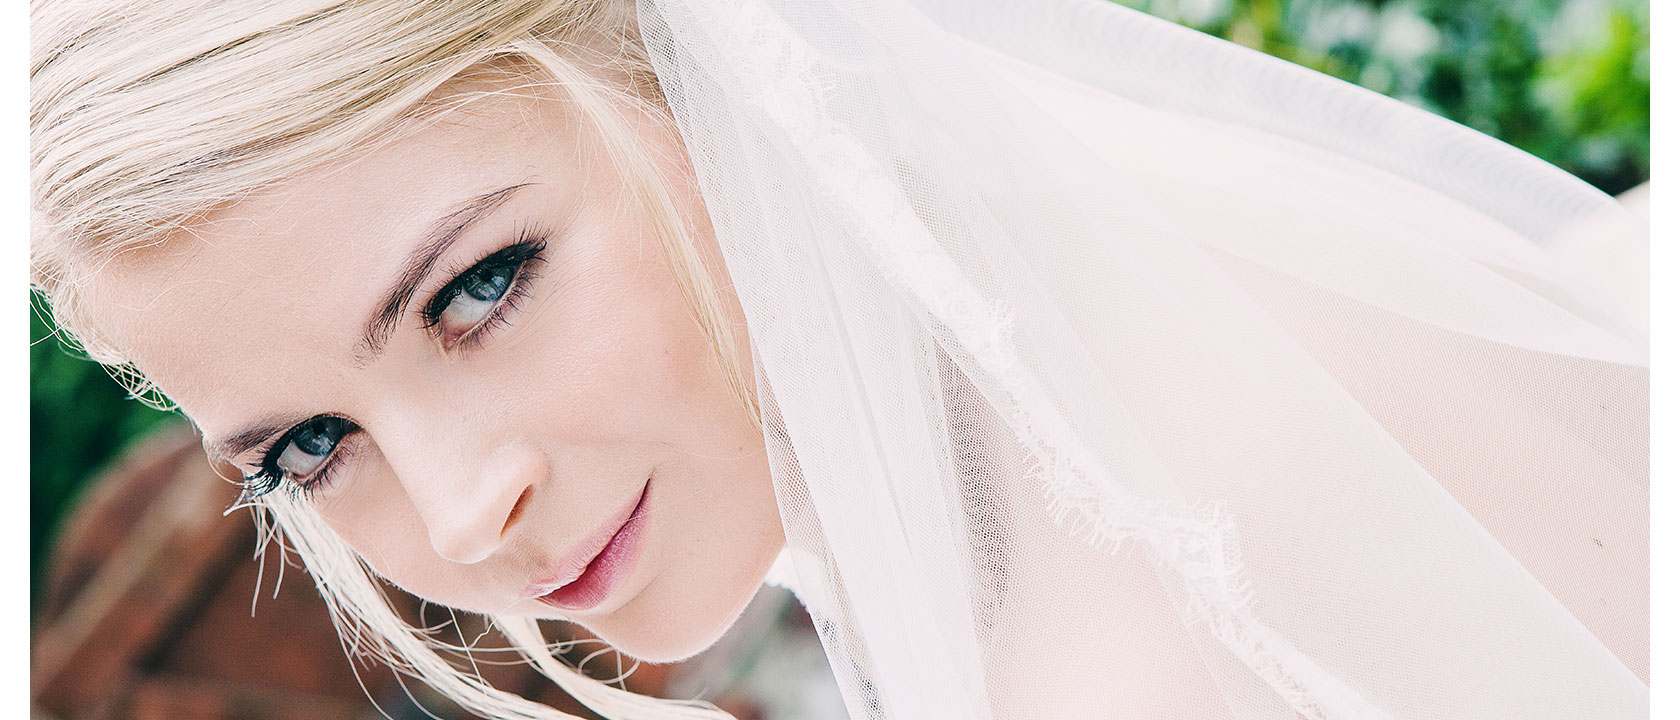 A perfect moment captured of a perfect bride on her wedding day.